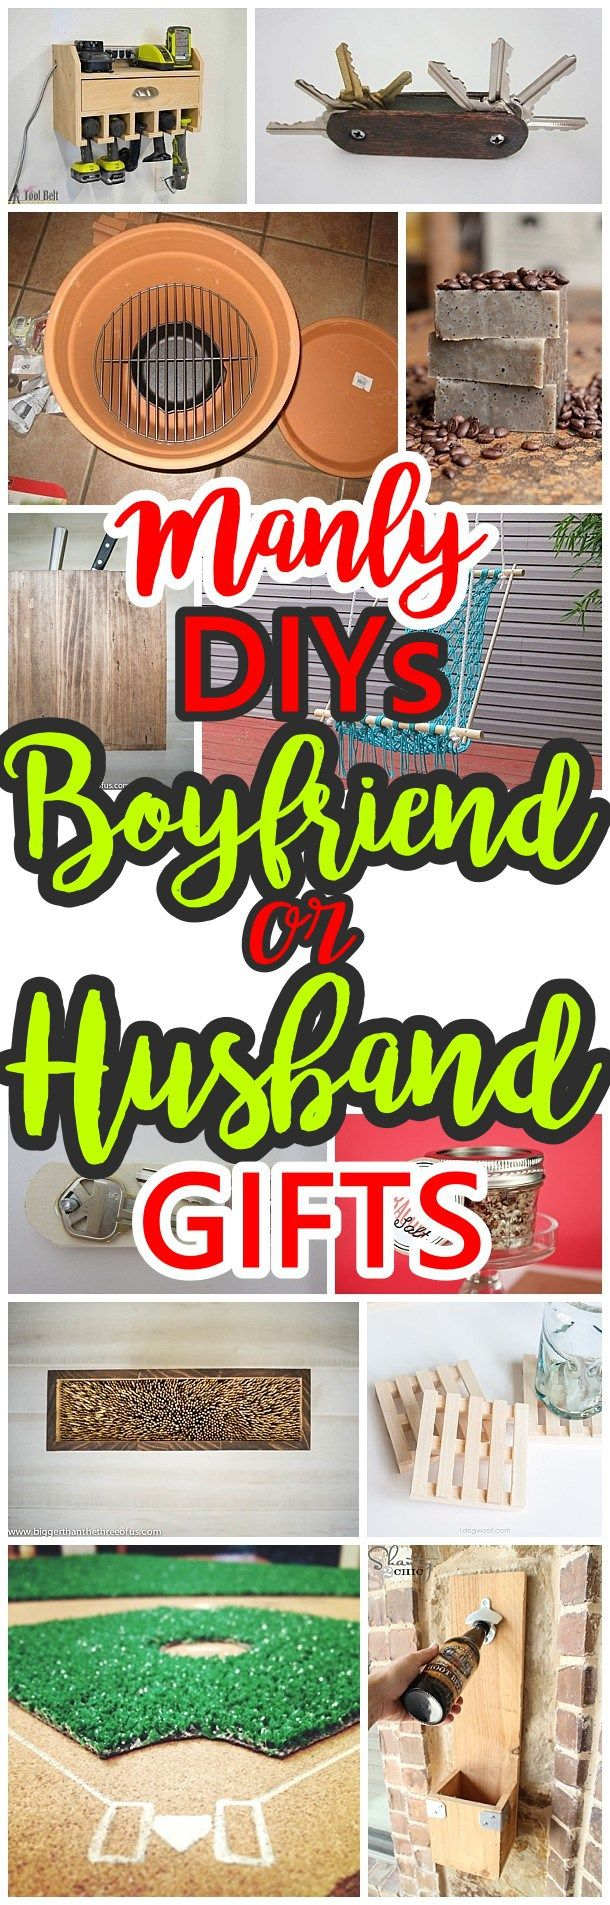 Best 25+ Diy brother gift ideas on Pinterest | Best 100 brother ...